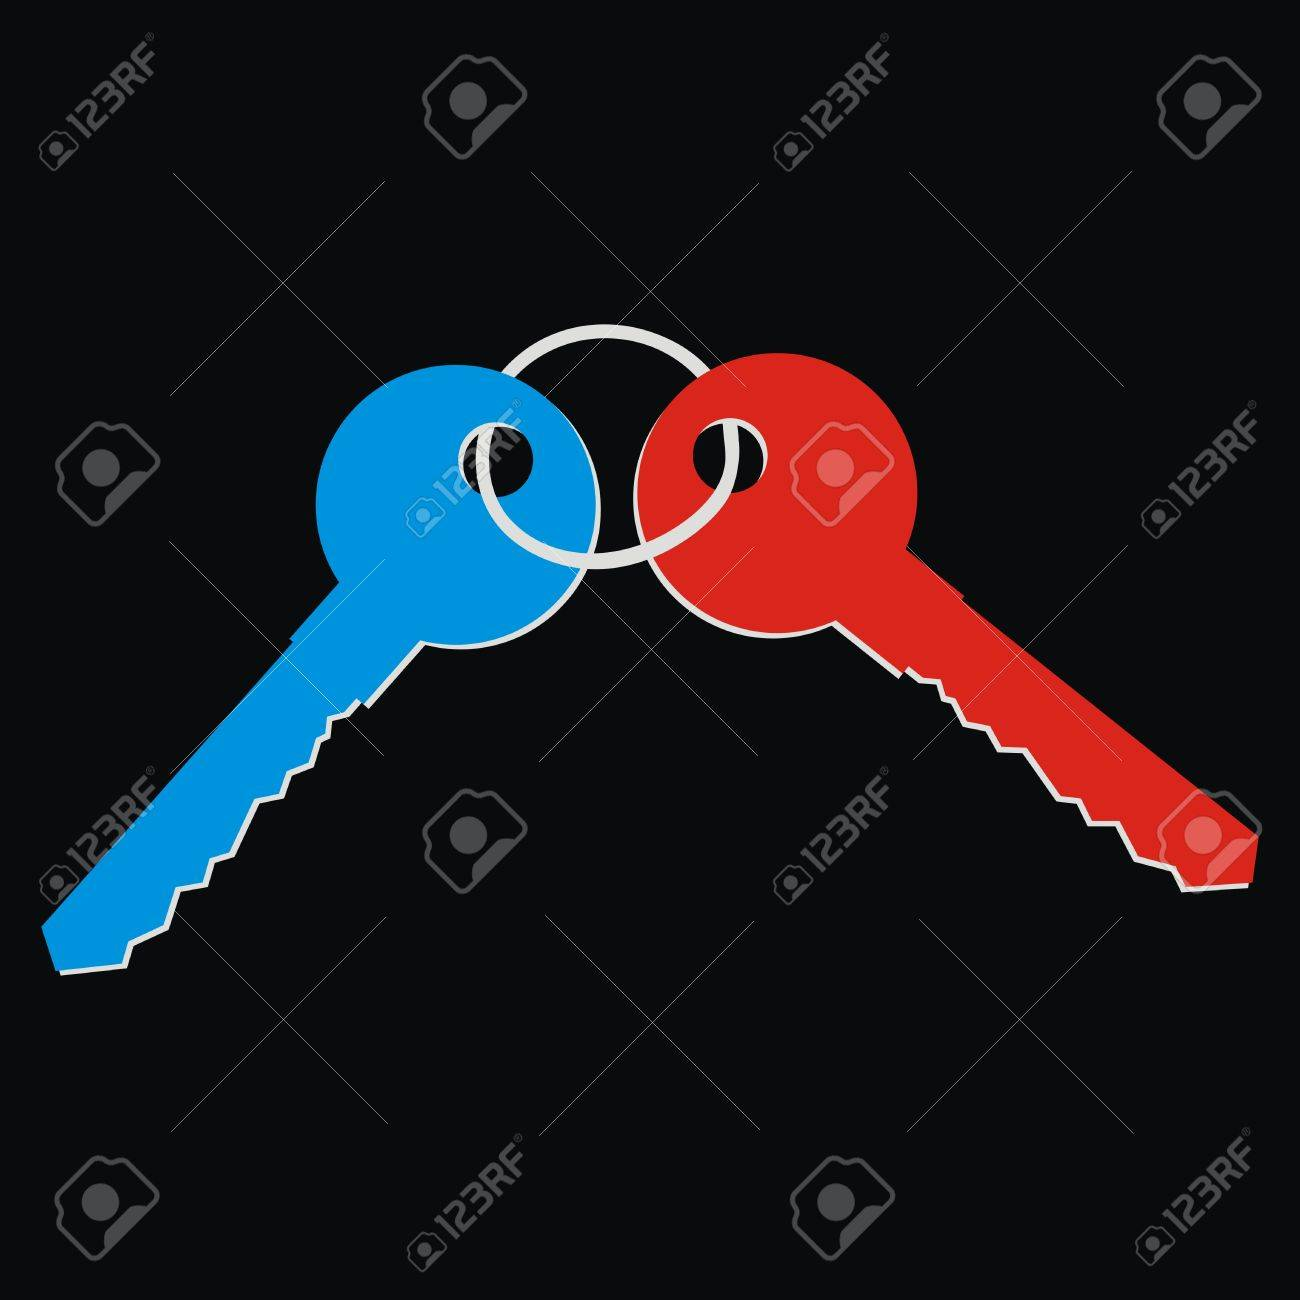 two keys illustration Stock Vector - 27311673